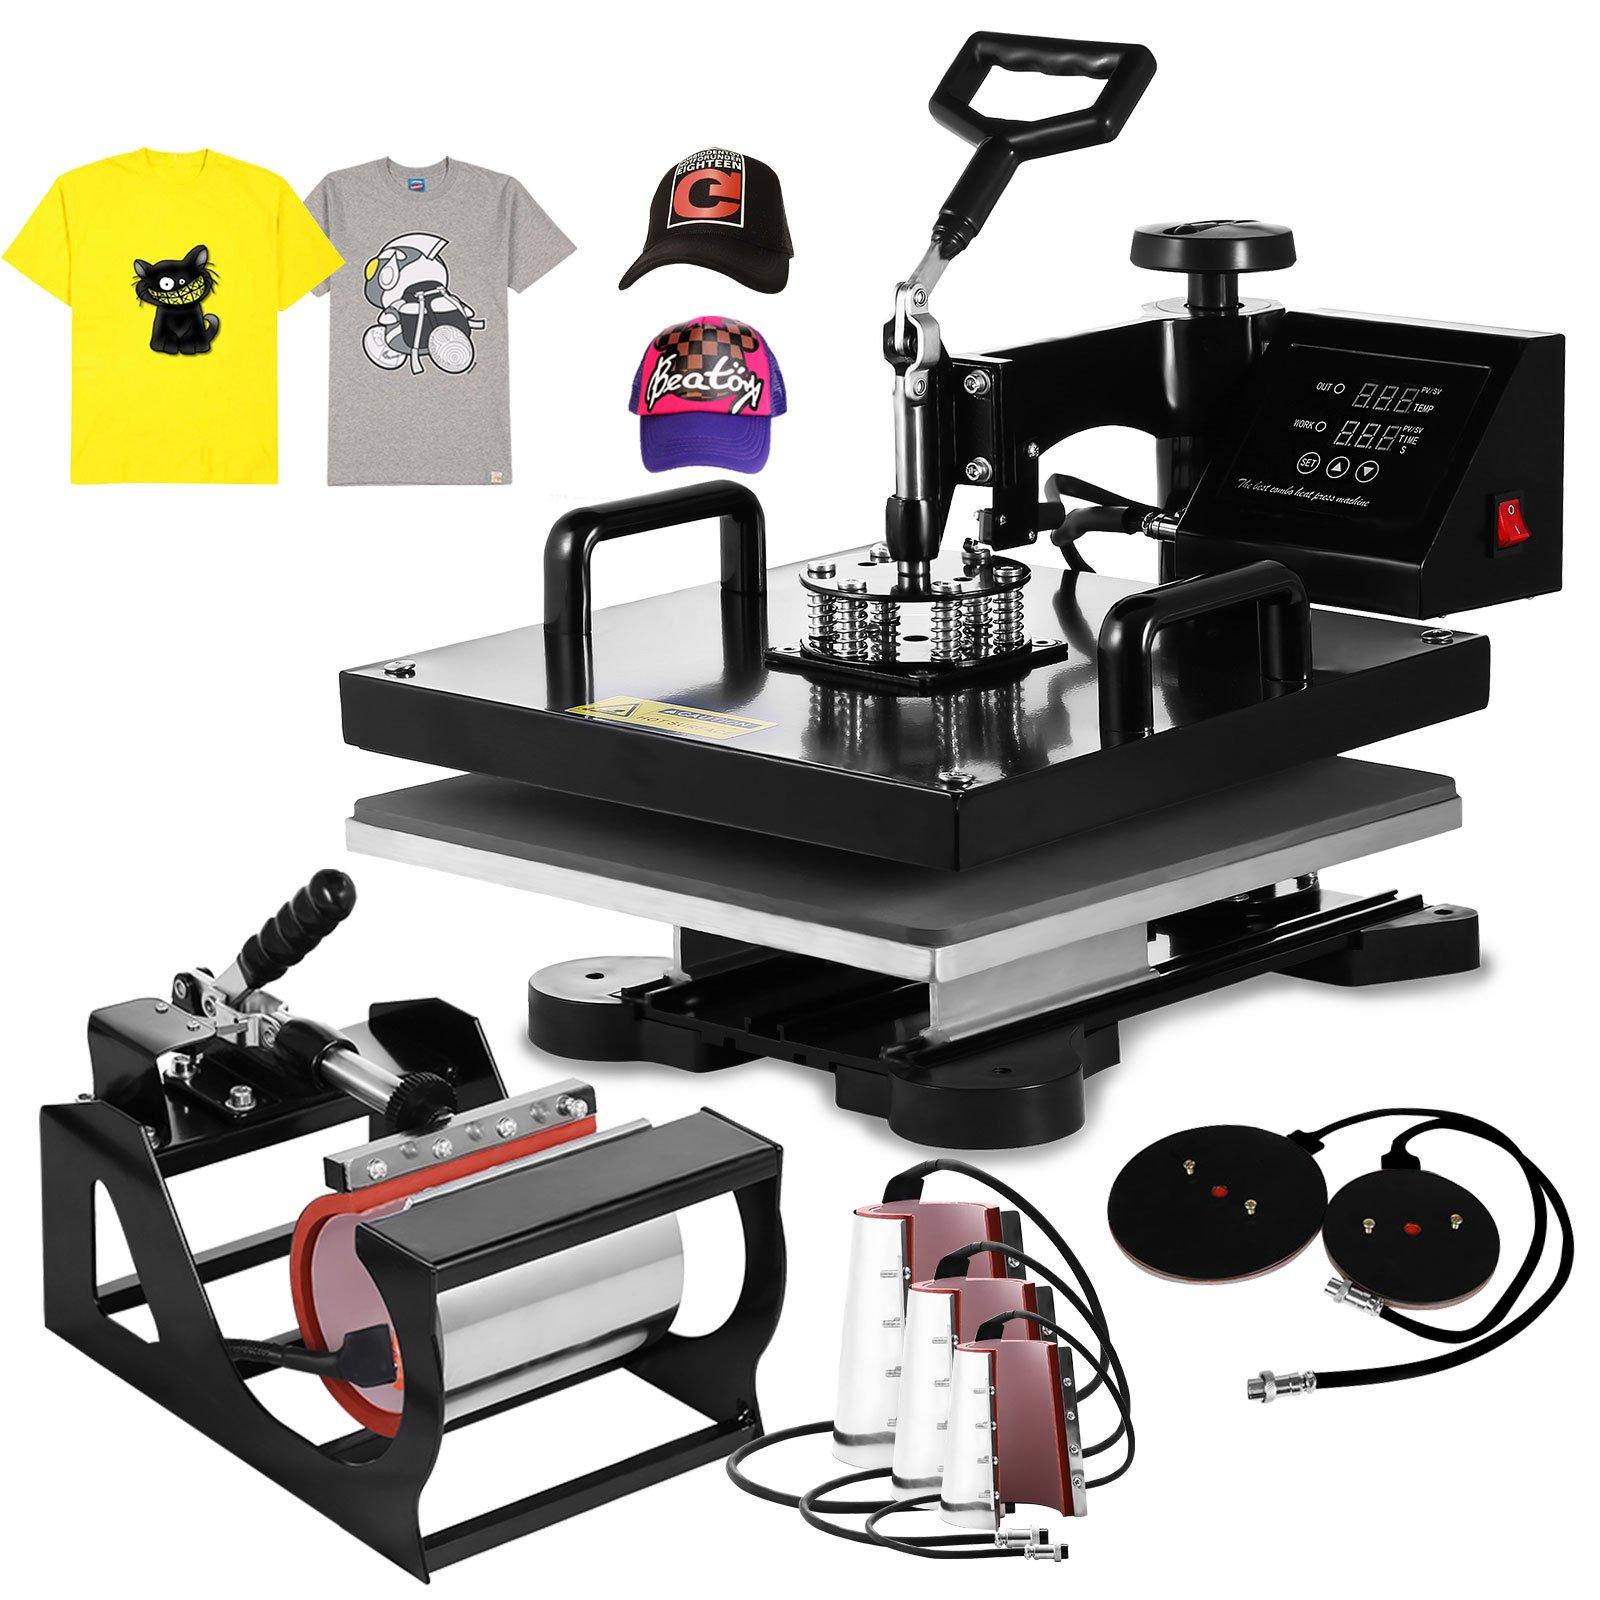 Mophorn Heat Press 8 in 1 15 X 15 Inch Multifunction Sublimation Heat Press Machine Desktop Iron Baseball Hat Press 1000W Digital Swing Away Transfer T Shirt Hat Mug (8IN1 15x15Inch) by Mophorn